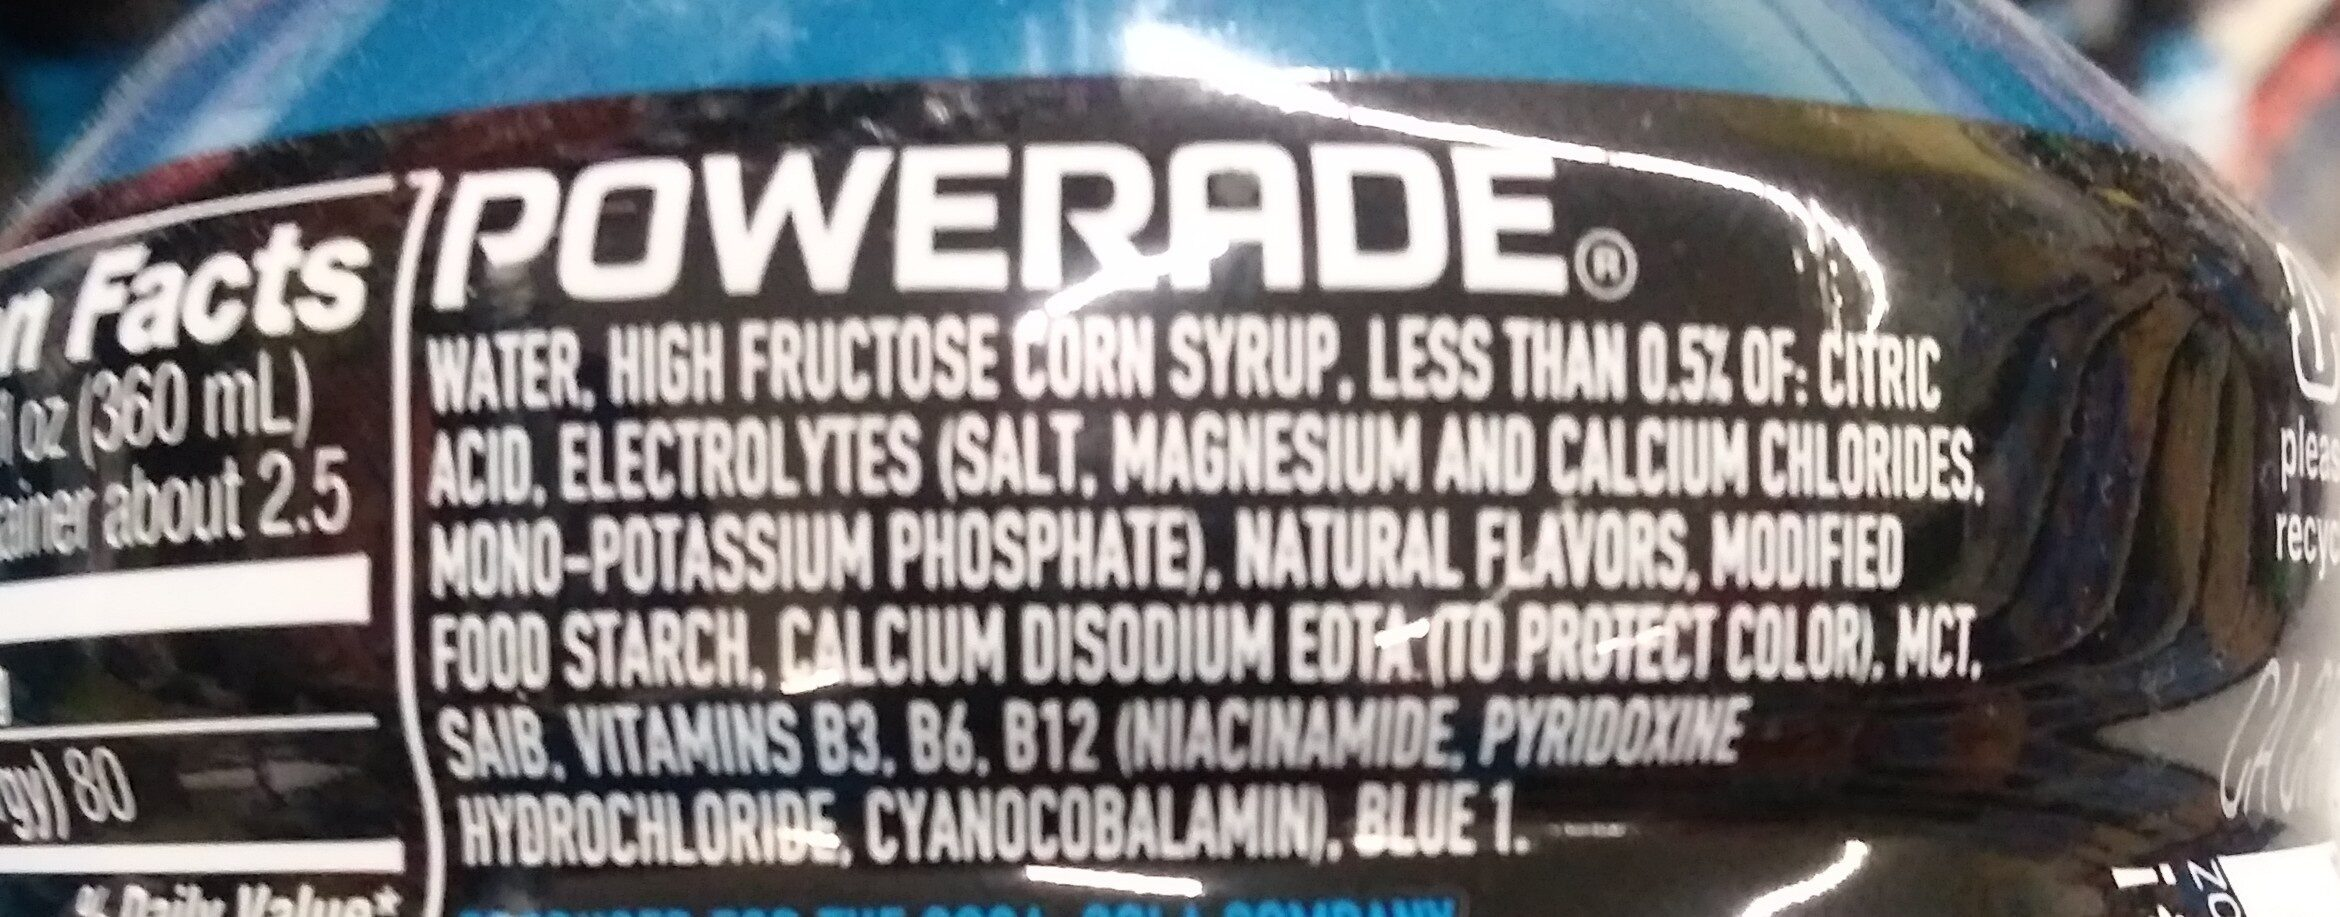 powerade - Ingredients